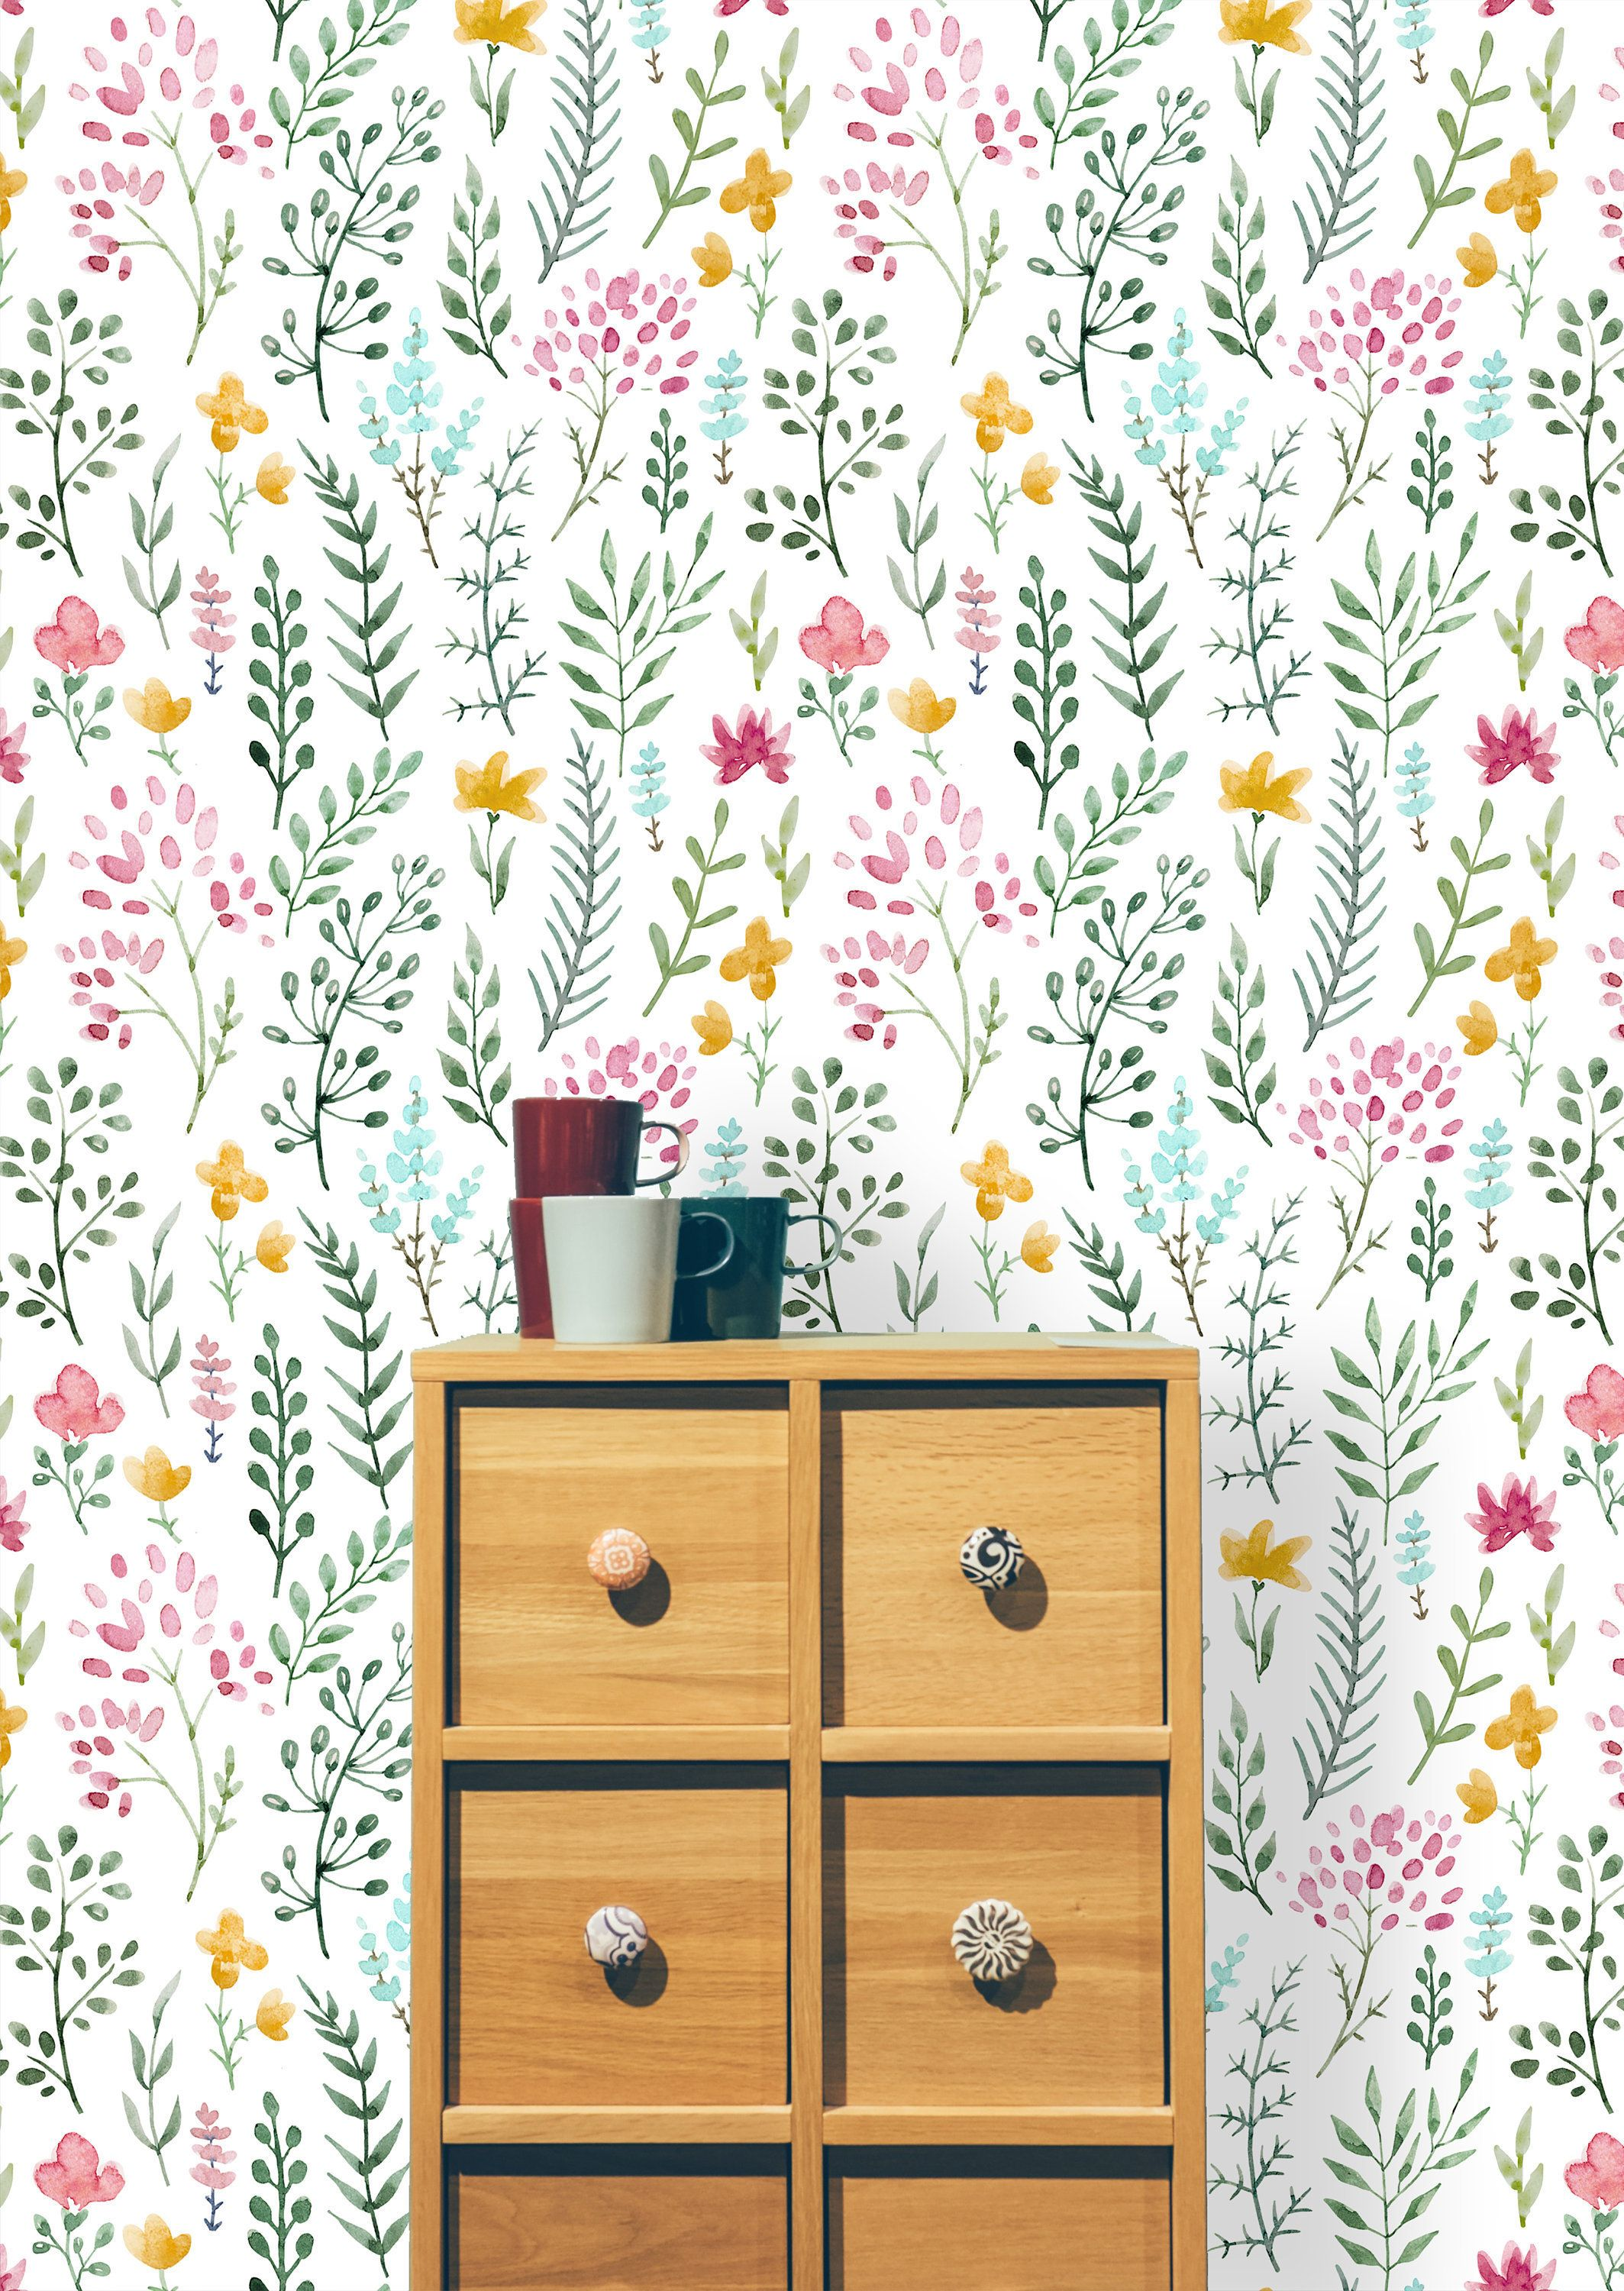 Leggett Removable Watercolor Cute Flowers 6 25 L X 25 W Peel And Stick Wallpaper Roll In 2020 Peel And Stick Wallpaper Self Adhesive Wallpaper Removable Wallpaper